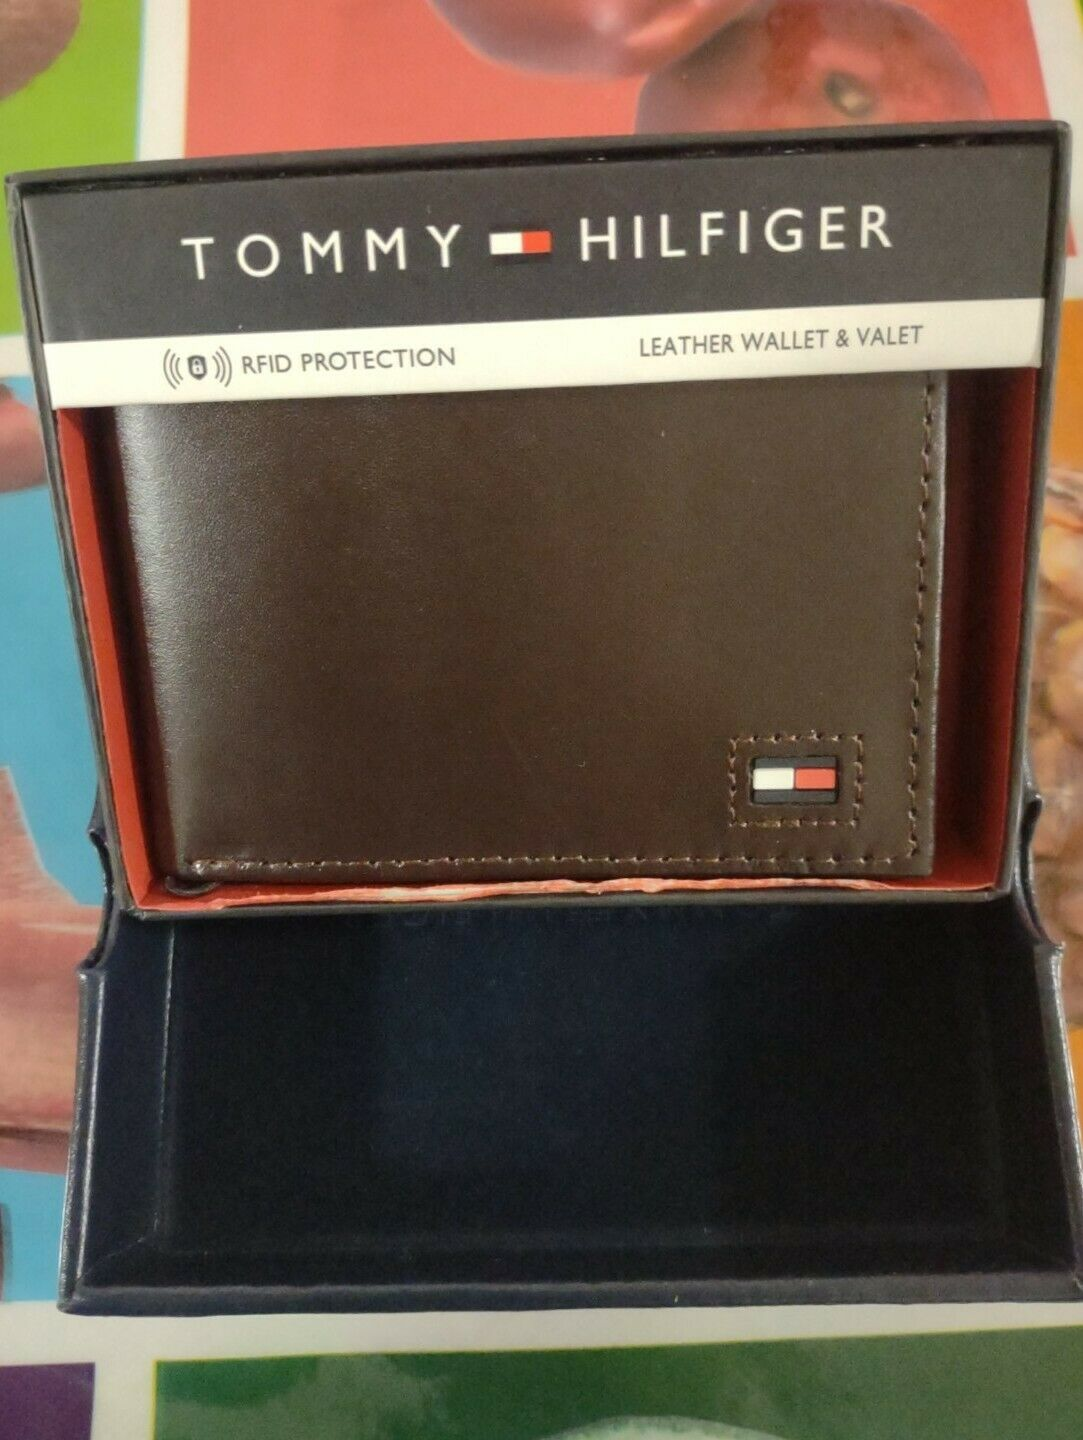 Tommy Hilfiger Black Leather Wallet and Valet, RFID Blocking NEW